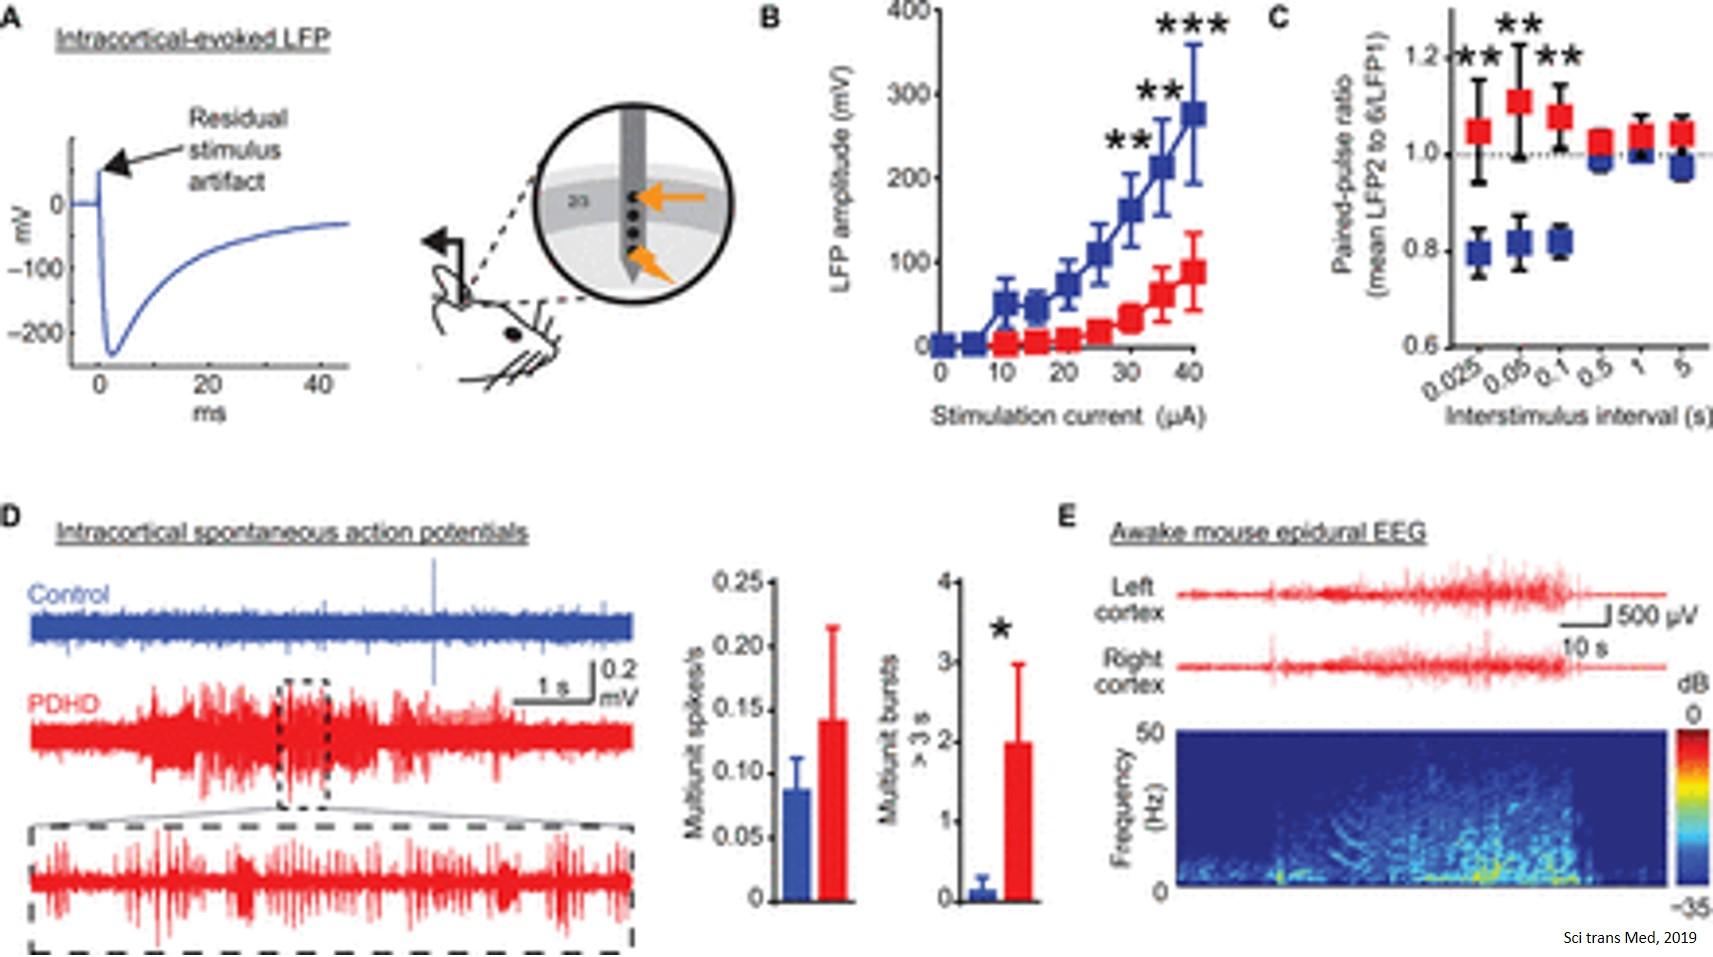 Predicting epileptic seizures few minutes in advance in brain metabolism deficient mouse model